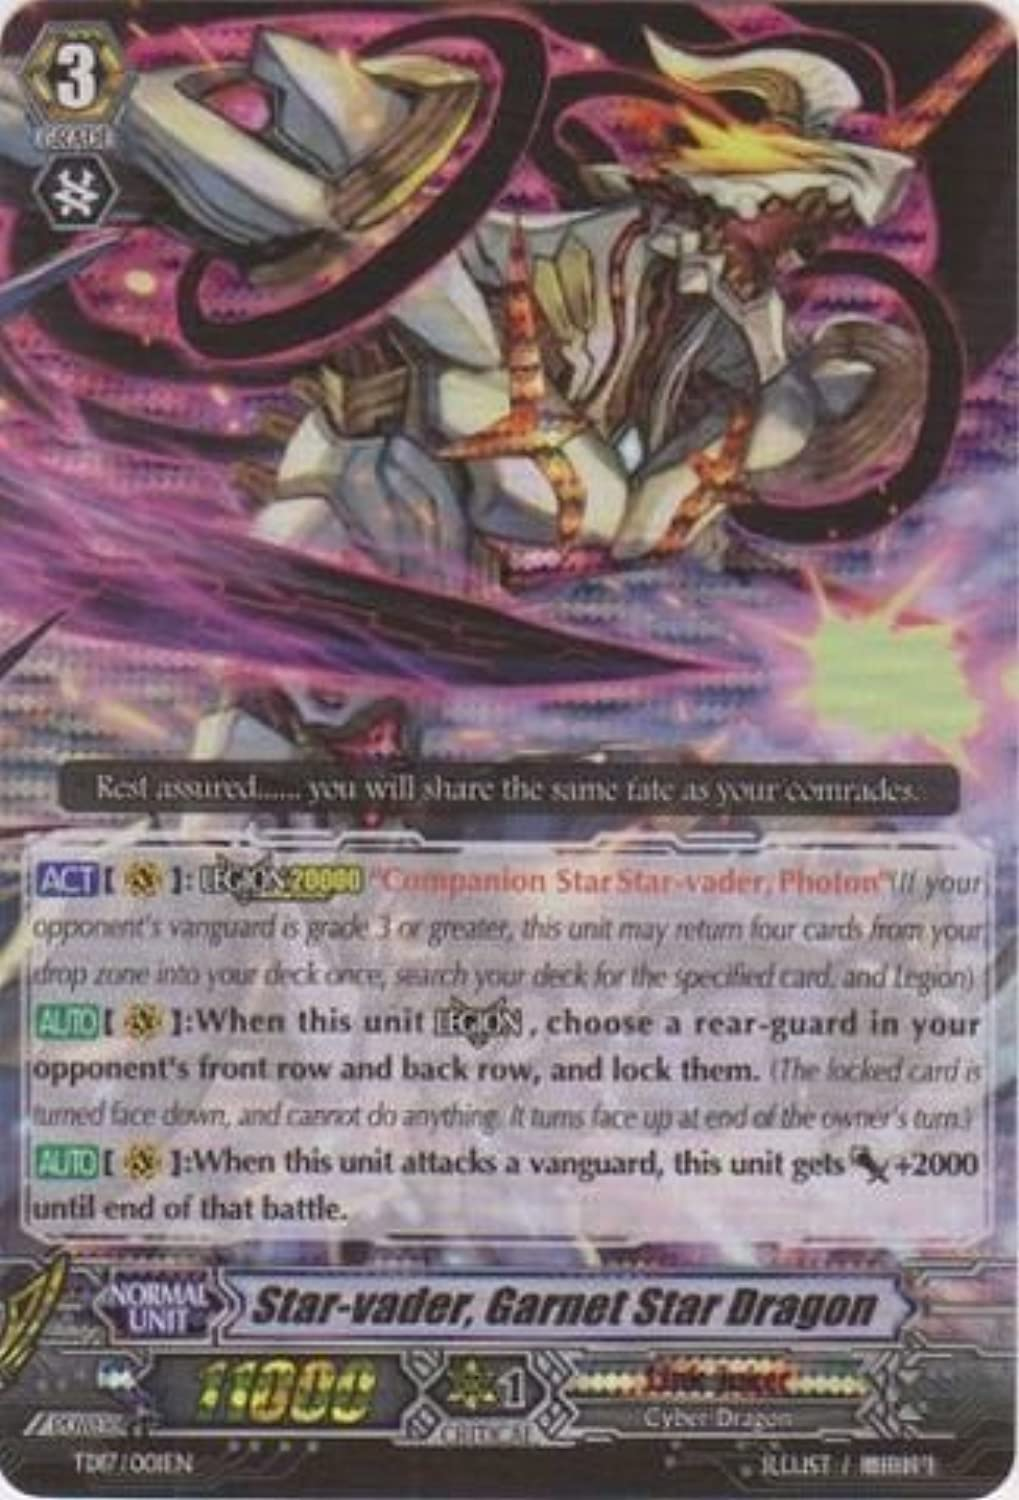 Cardfight   Vanguard TCG - Star-vader, Garnet Star Dragon (TD17 001EN) - Trial Deck 17  Will of the Locked Dragon by Cardfight   Vanguard TCG